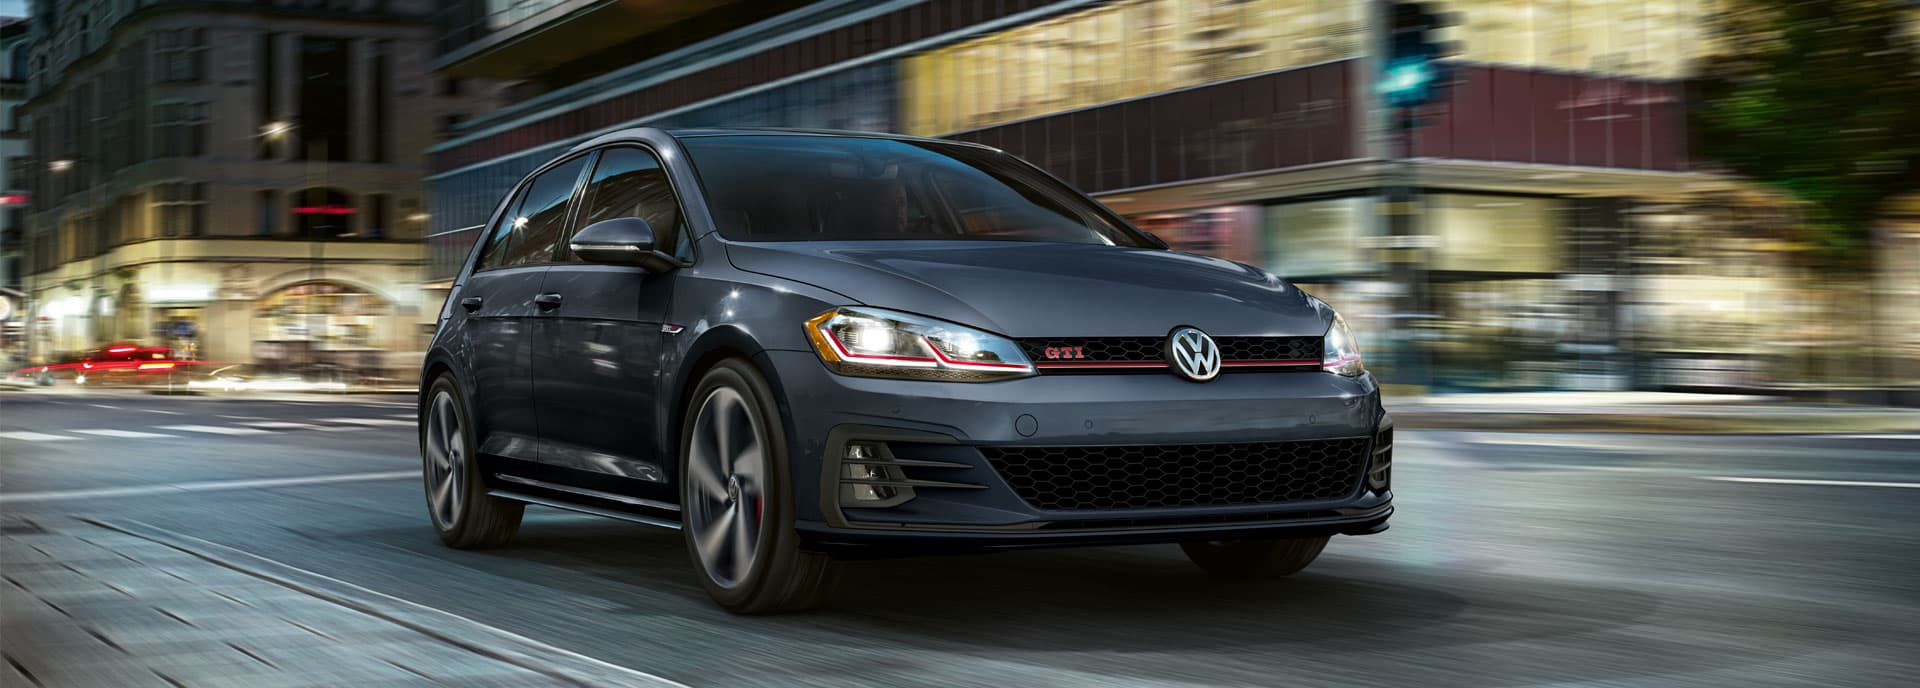 Volkswagen Golf GTI Hero Image